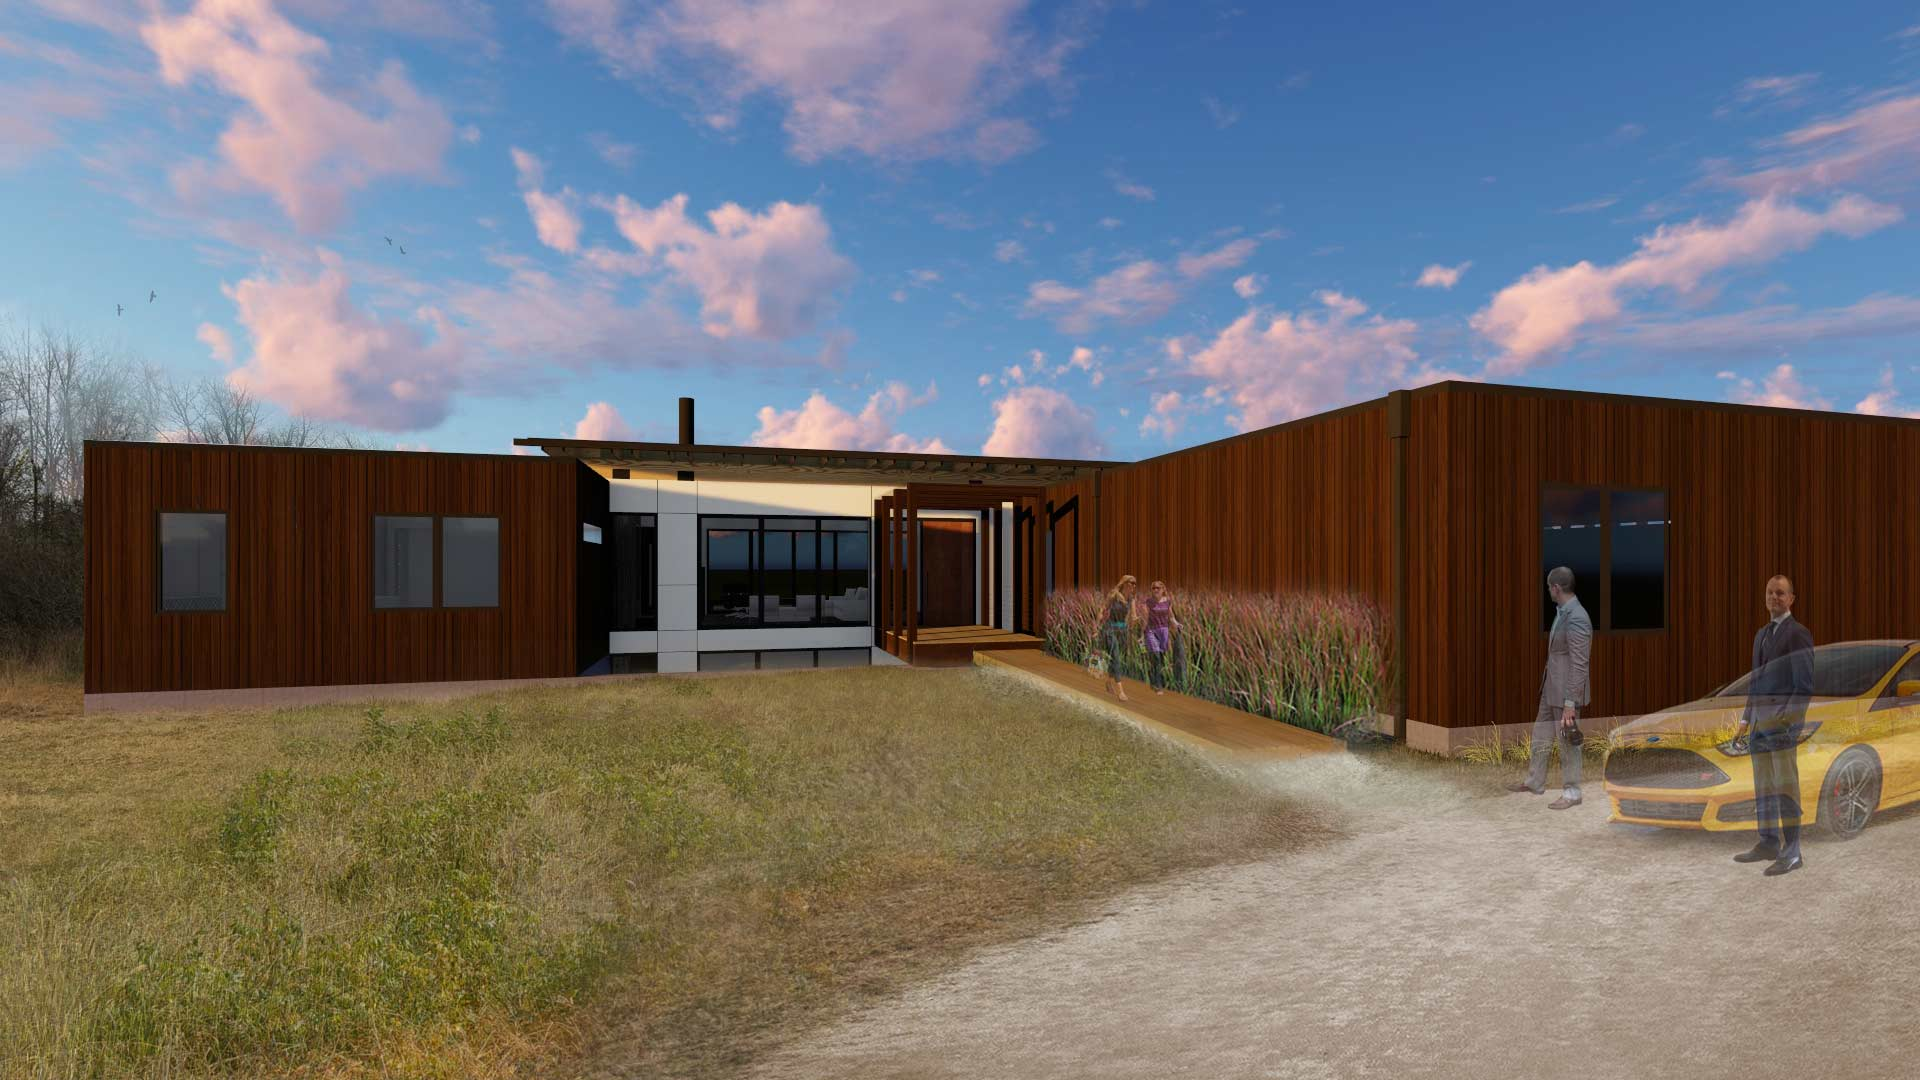 Rendering-North Exterior Elevation - New Modern House 1 (Copperwood) - Zionsville, IN